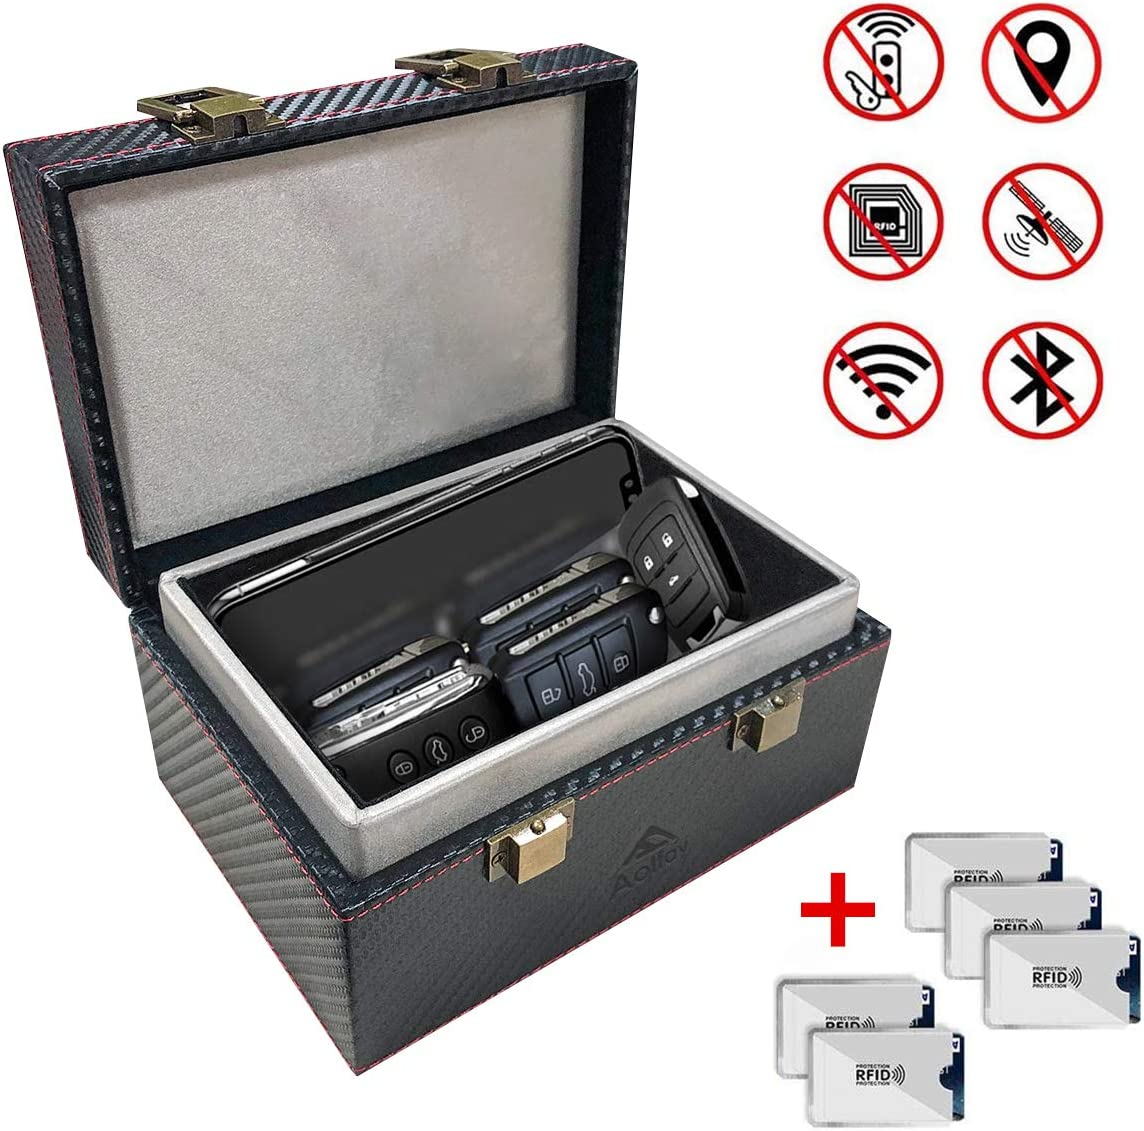 Keyless Cars Security Anti Theft Large Storage Box with 5 RFID Signal Blocking Cases Signal Blocker Box for Car Keys Aolfay Faraday Box Shielding Pouch for Cell Phone and Car Key Privacy Protection